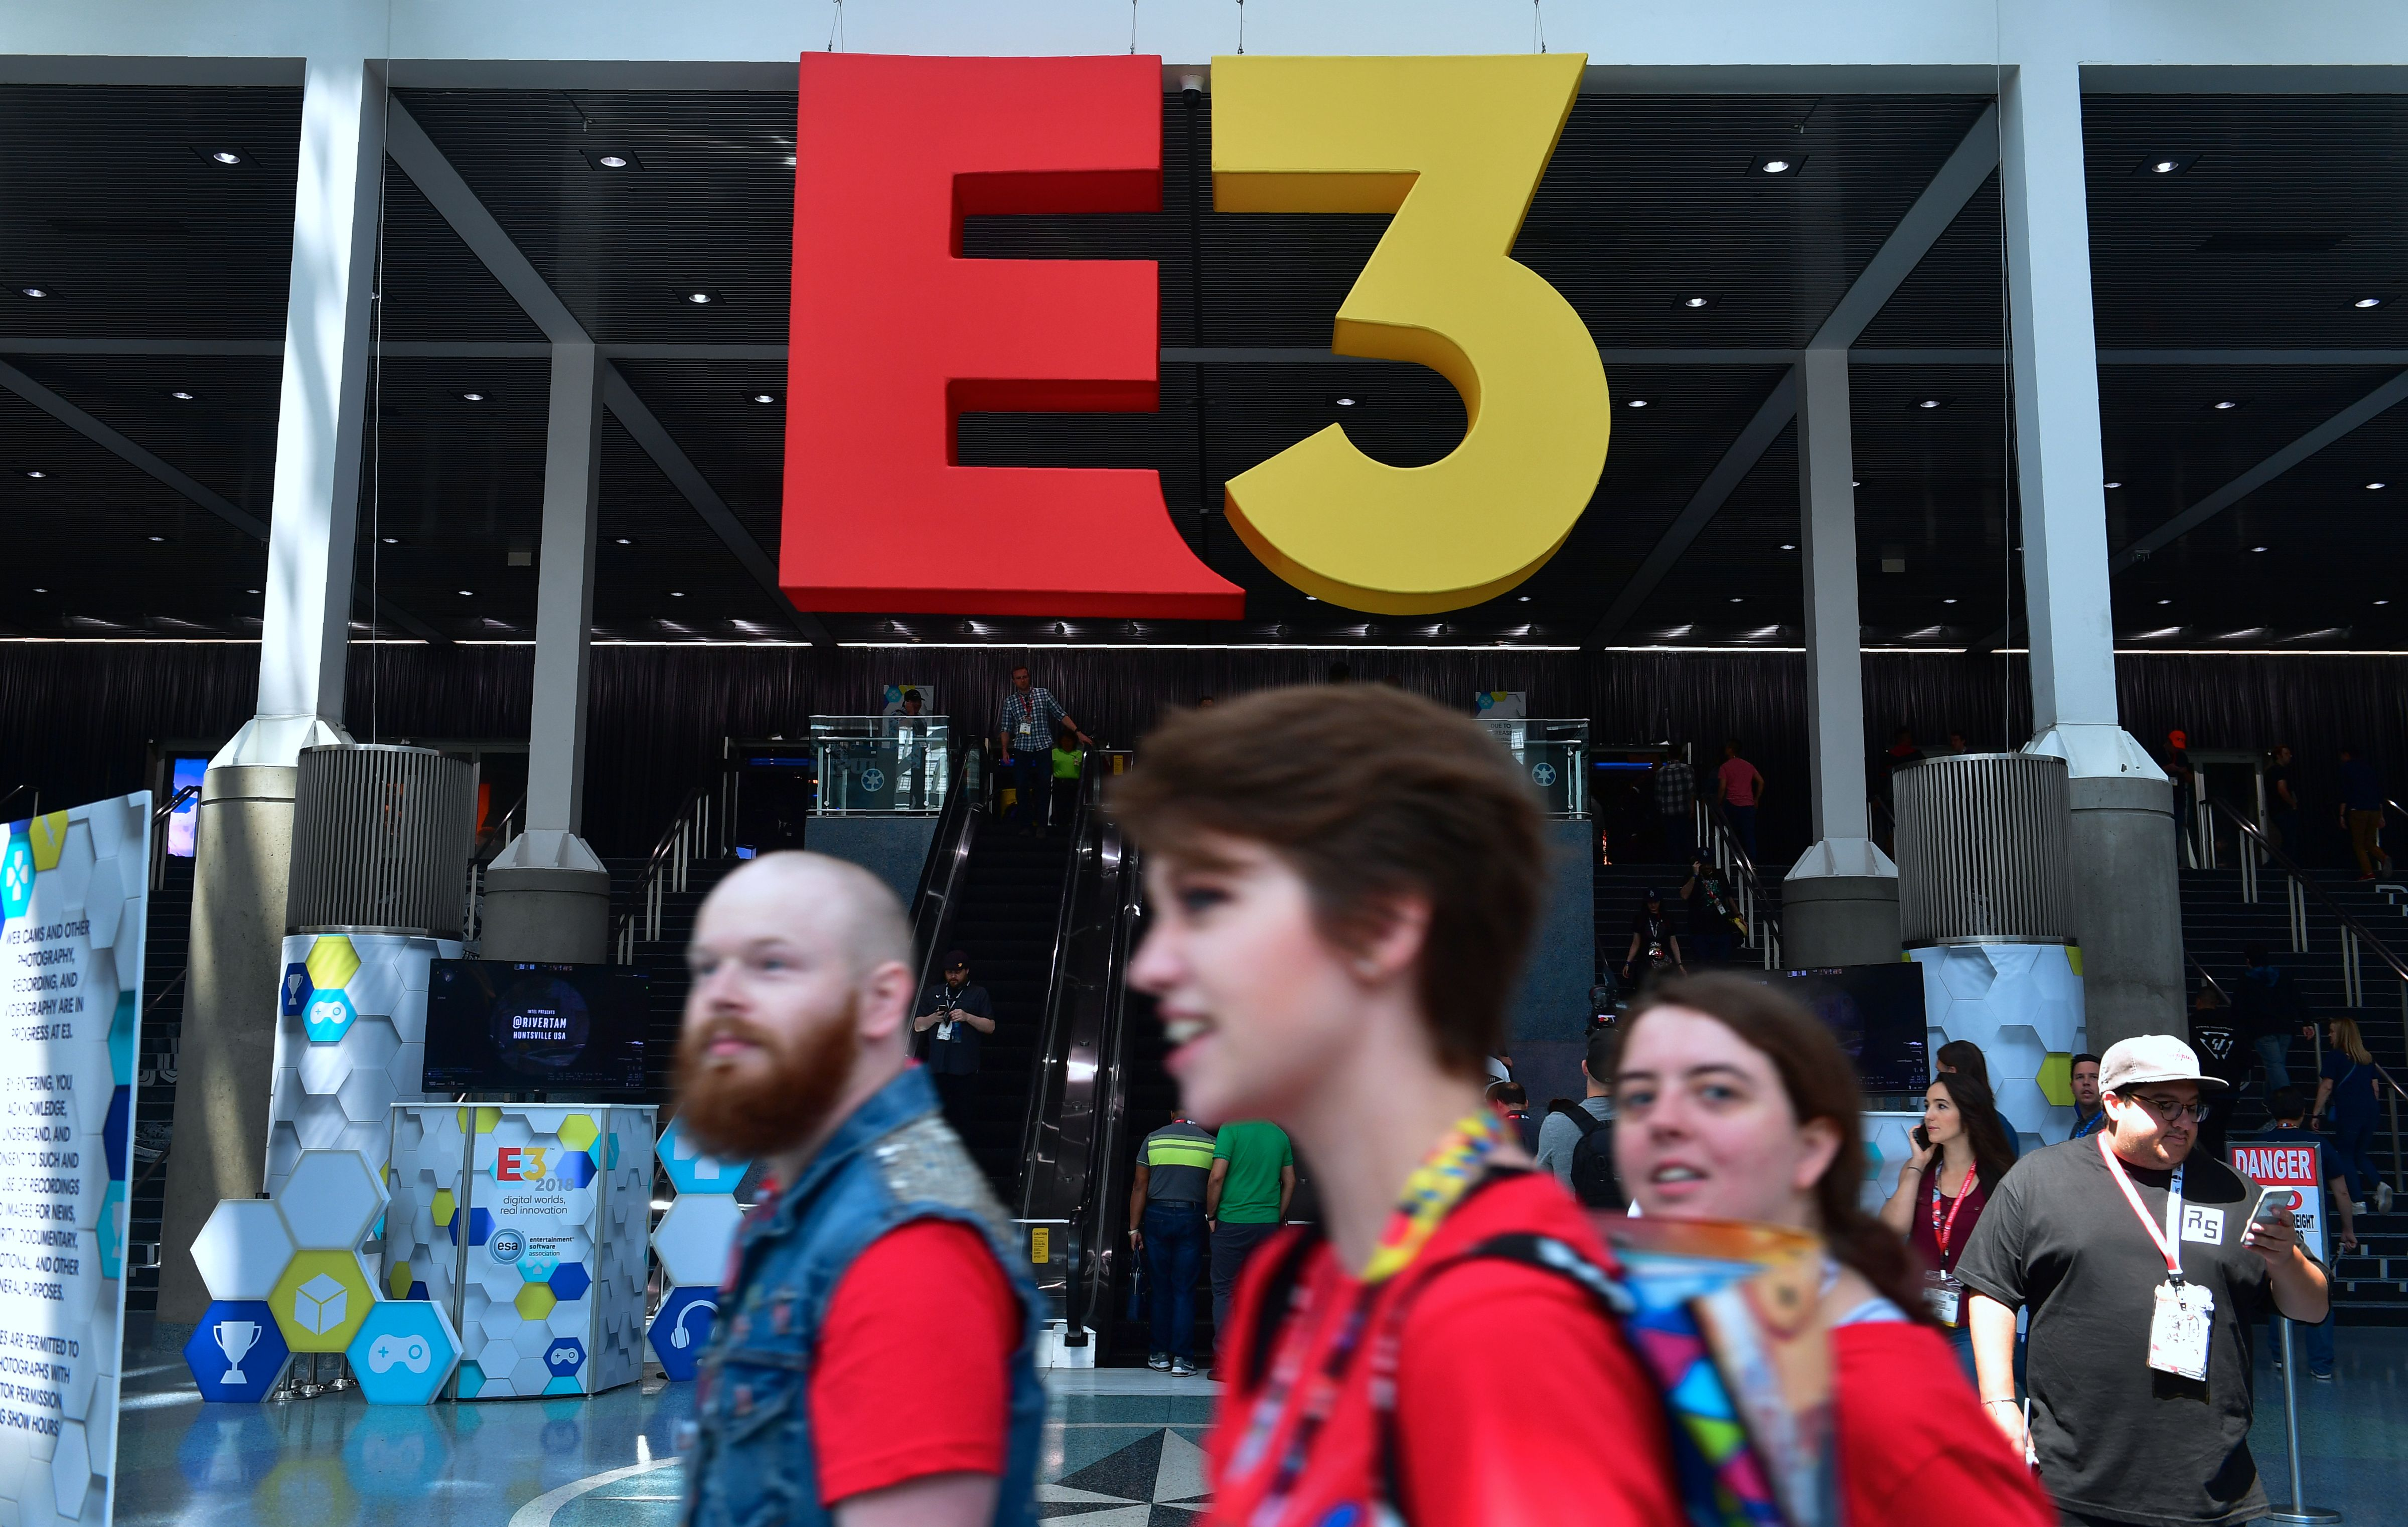 All the highlights from the massive E3 sales from Nintendo, PlayStation and Xbox